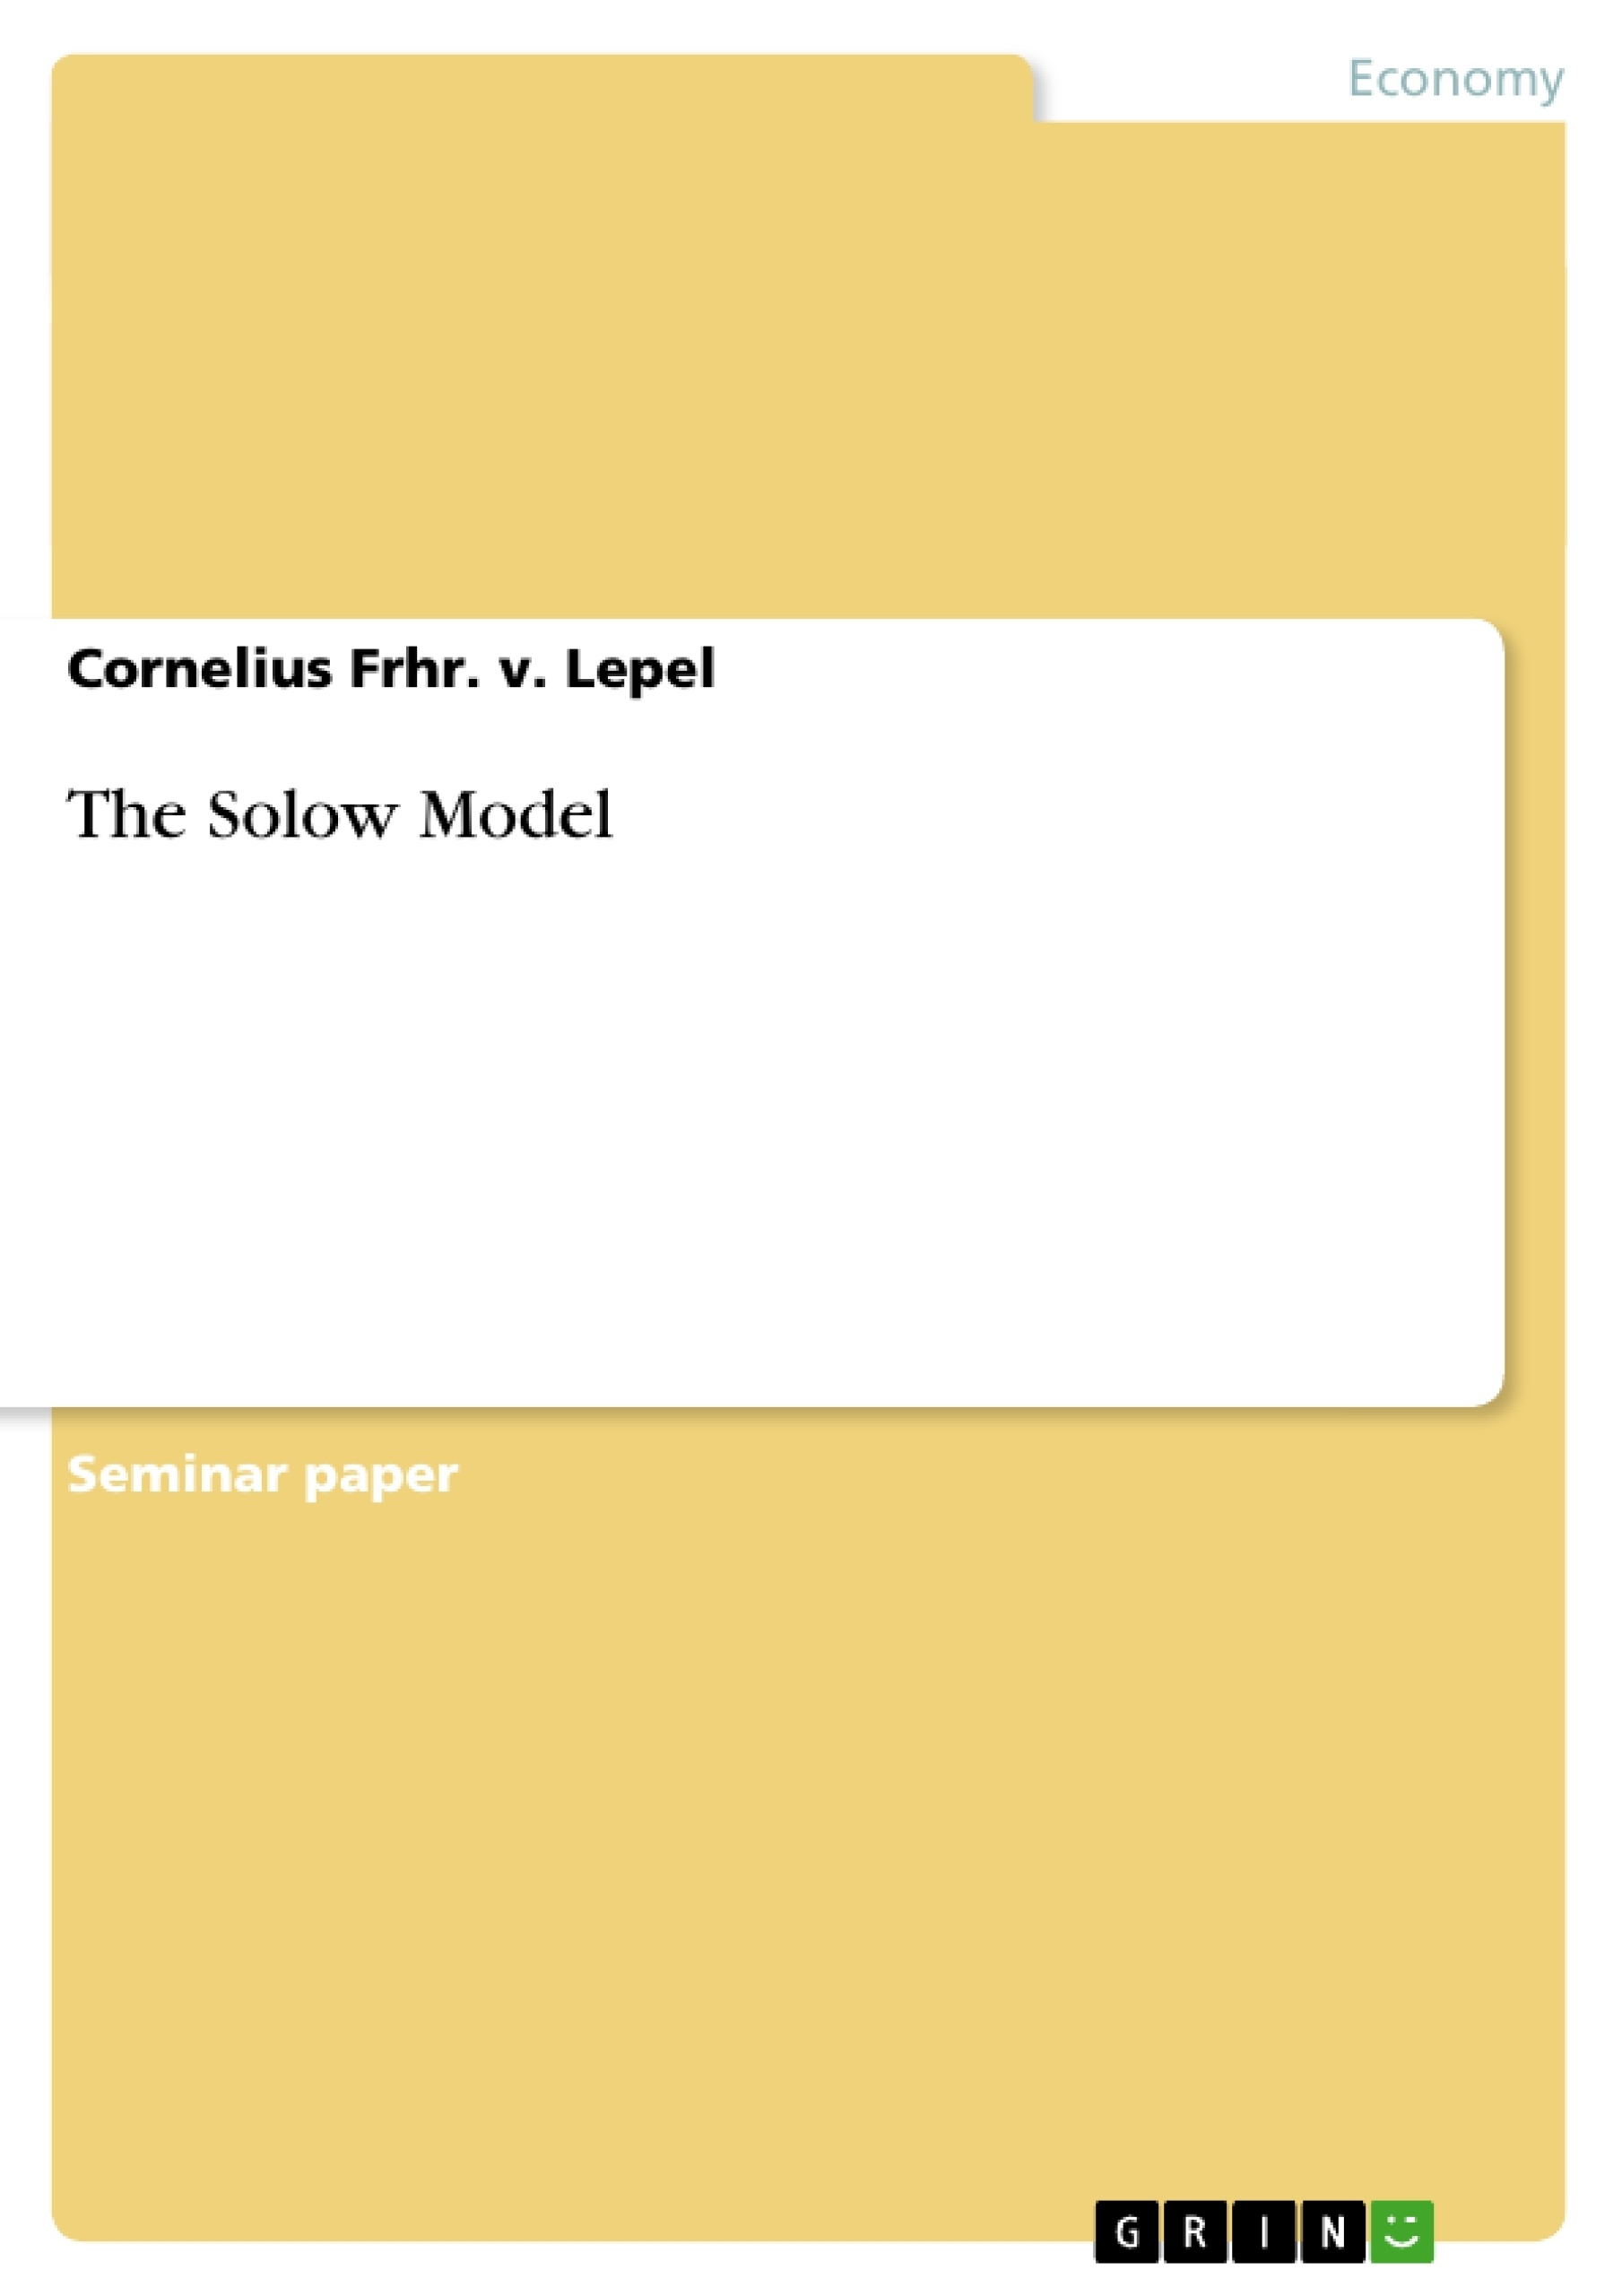 Title: The Solow Model